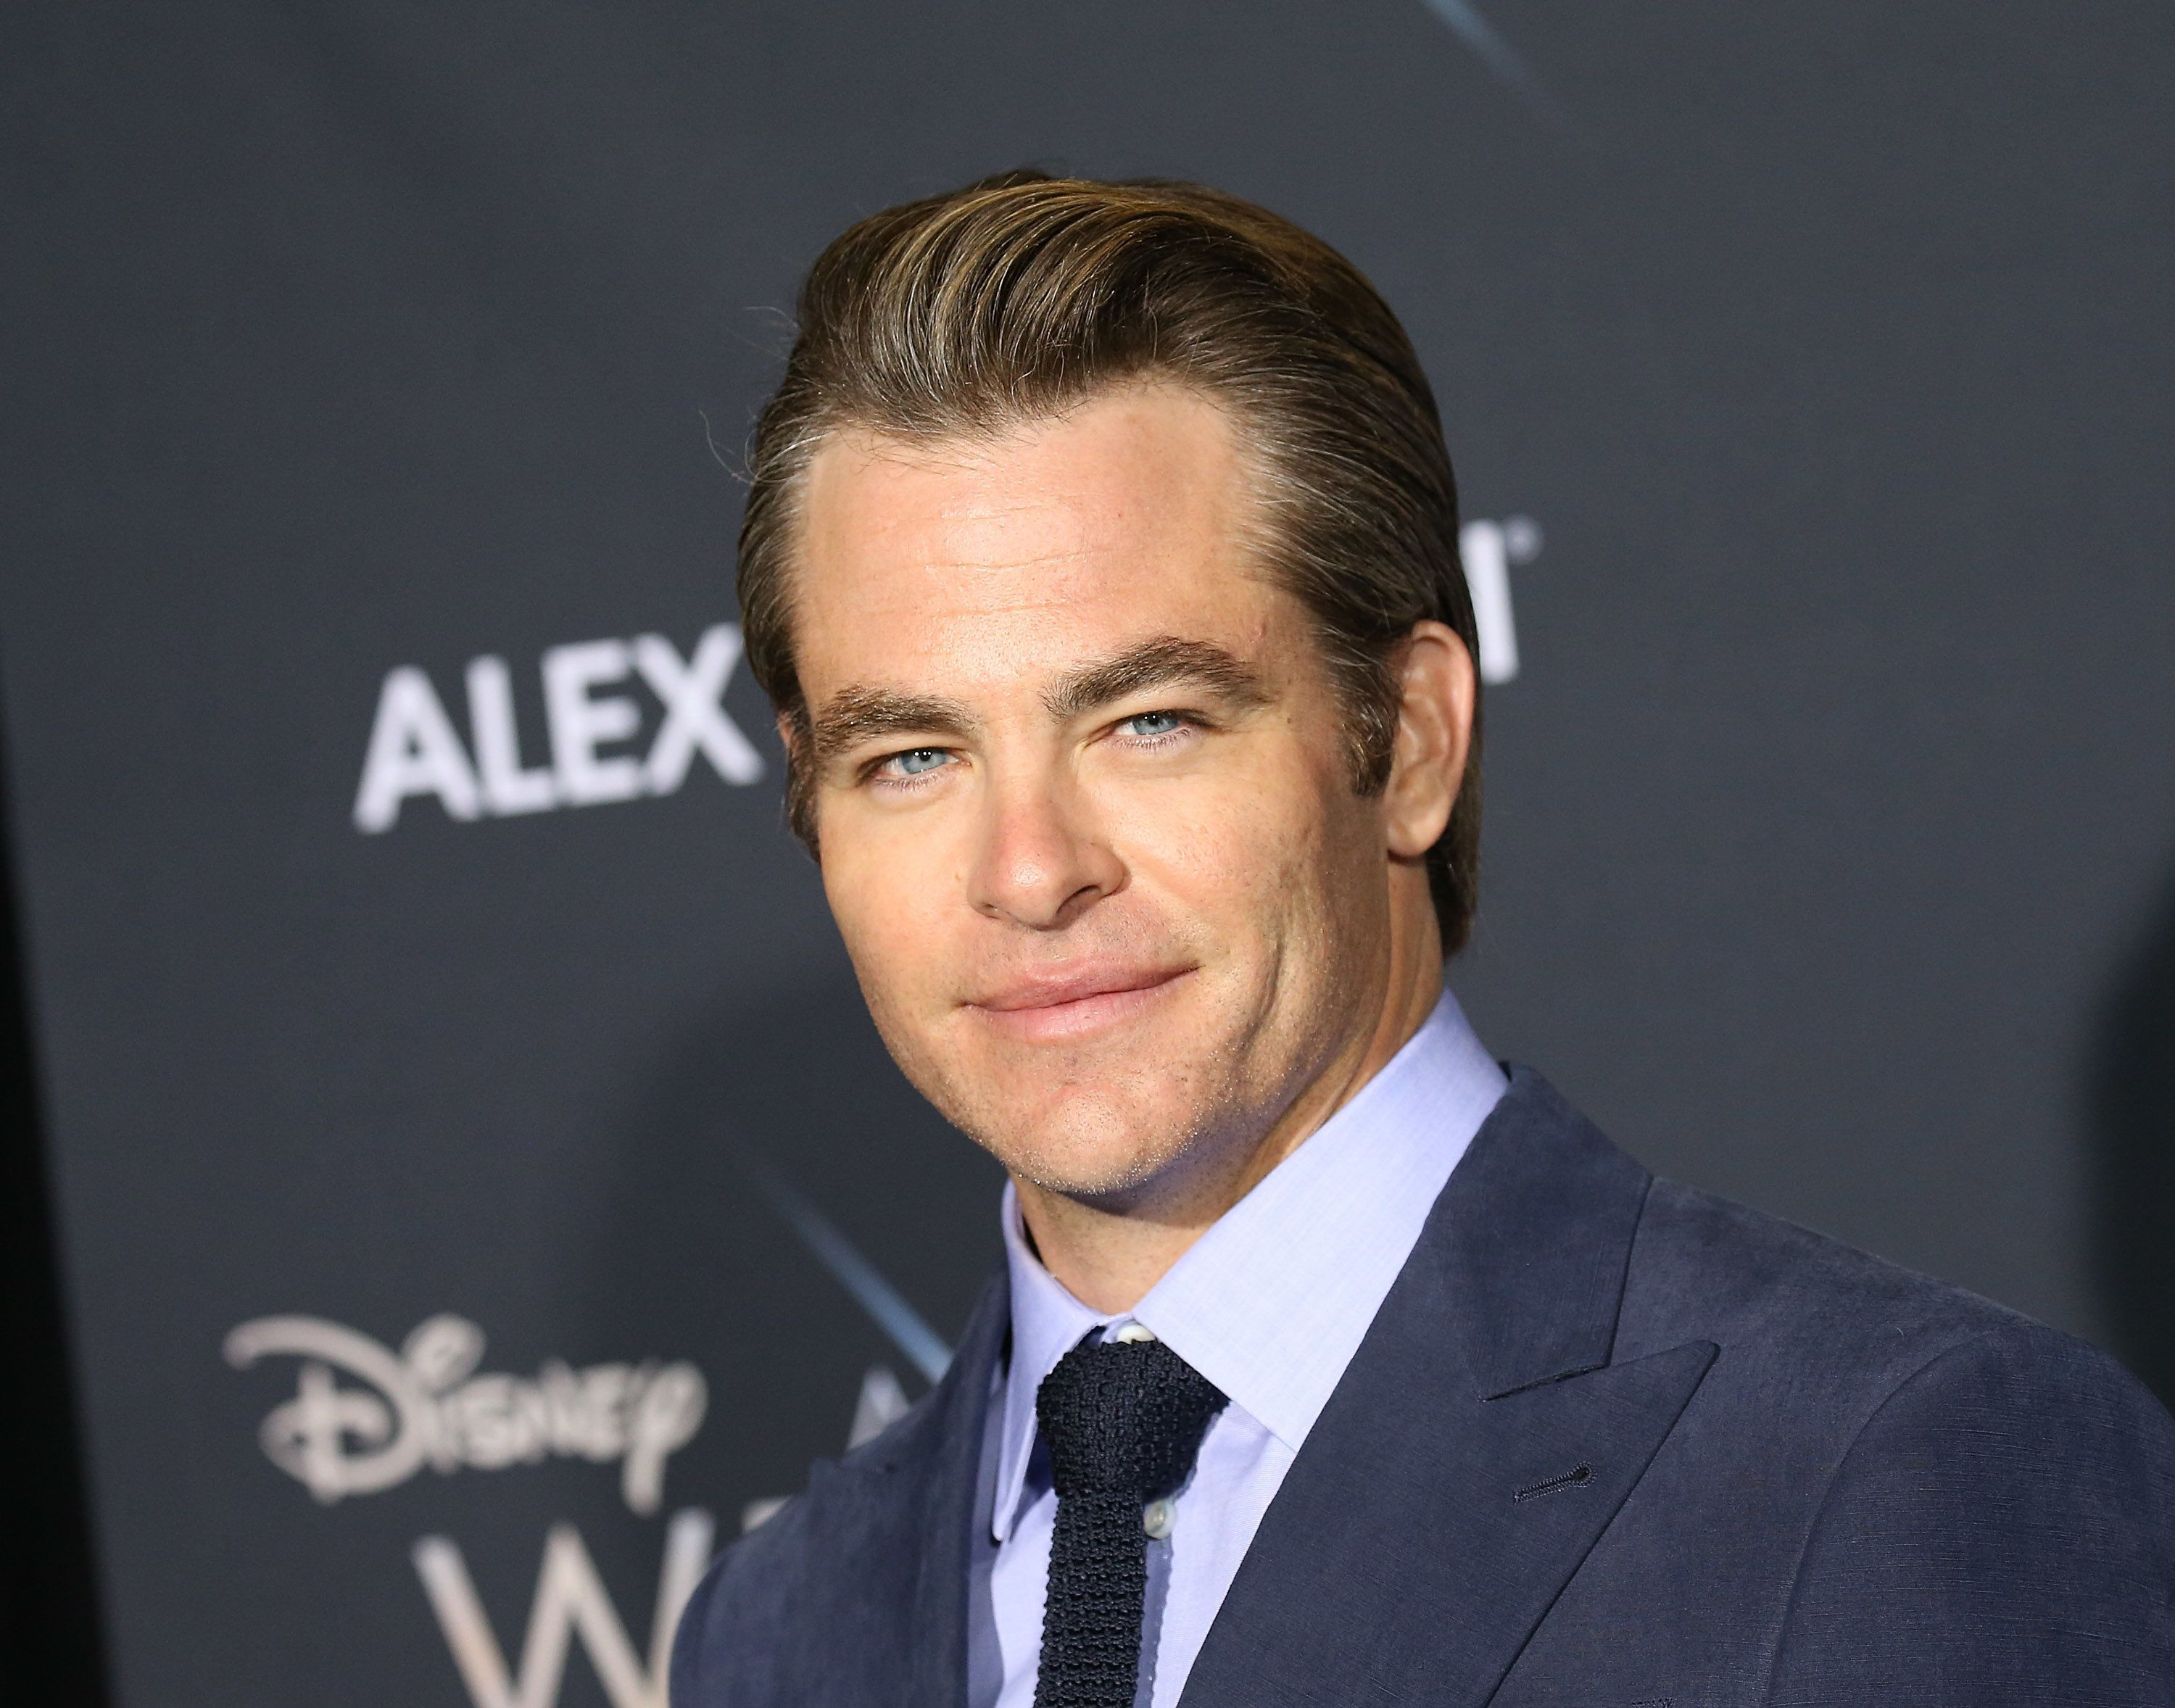 LOS ANGELES, CA - FEBRUARY 26:  Chris Pine arrives at the Los Angeles premiere of Disney's 'A Wrinkle In Time' held at El Capitan Theatre on February 26, 2018 in Los Angeles, California.  (Photo by Michael Tran/FilmMagic)